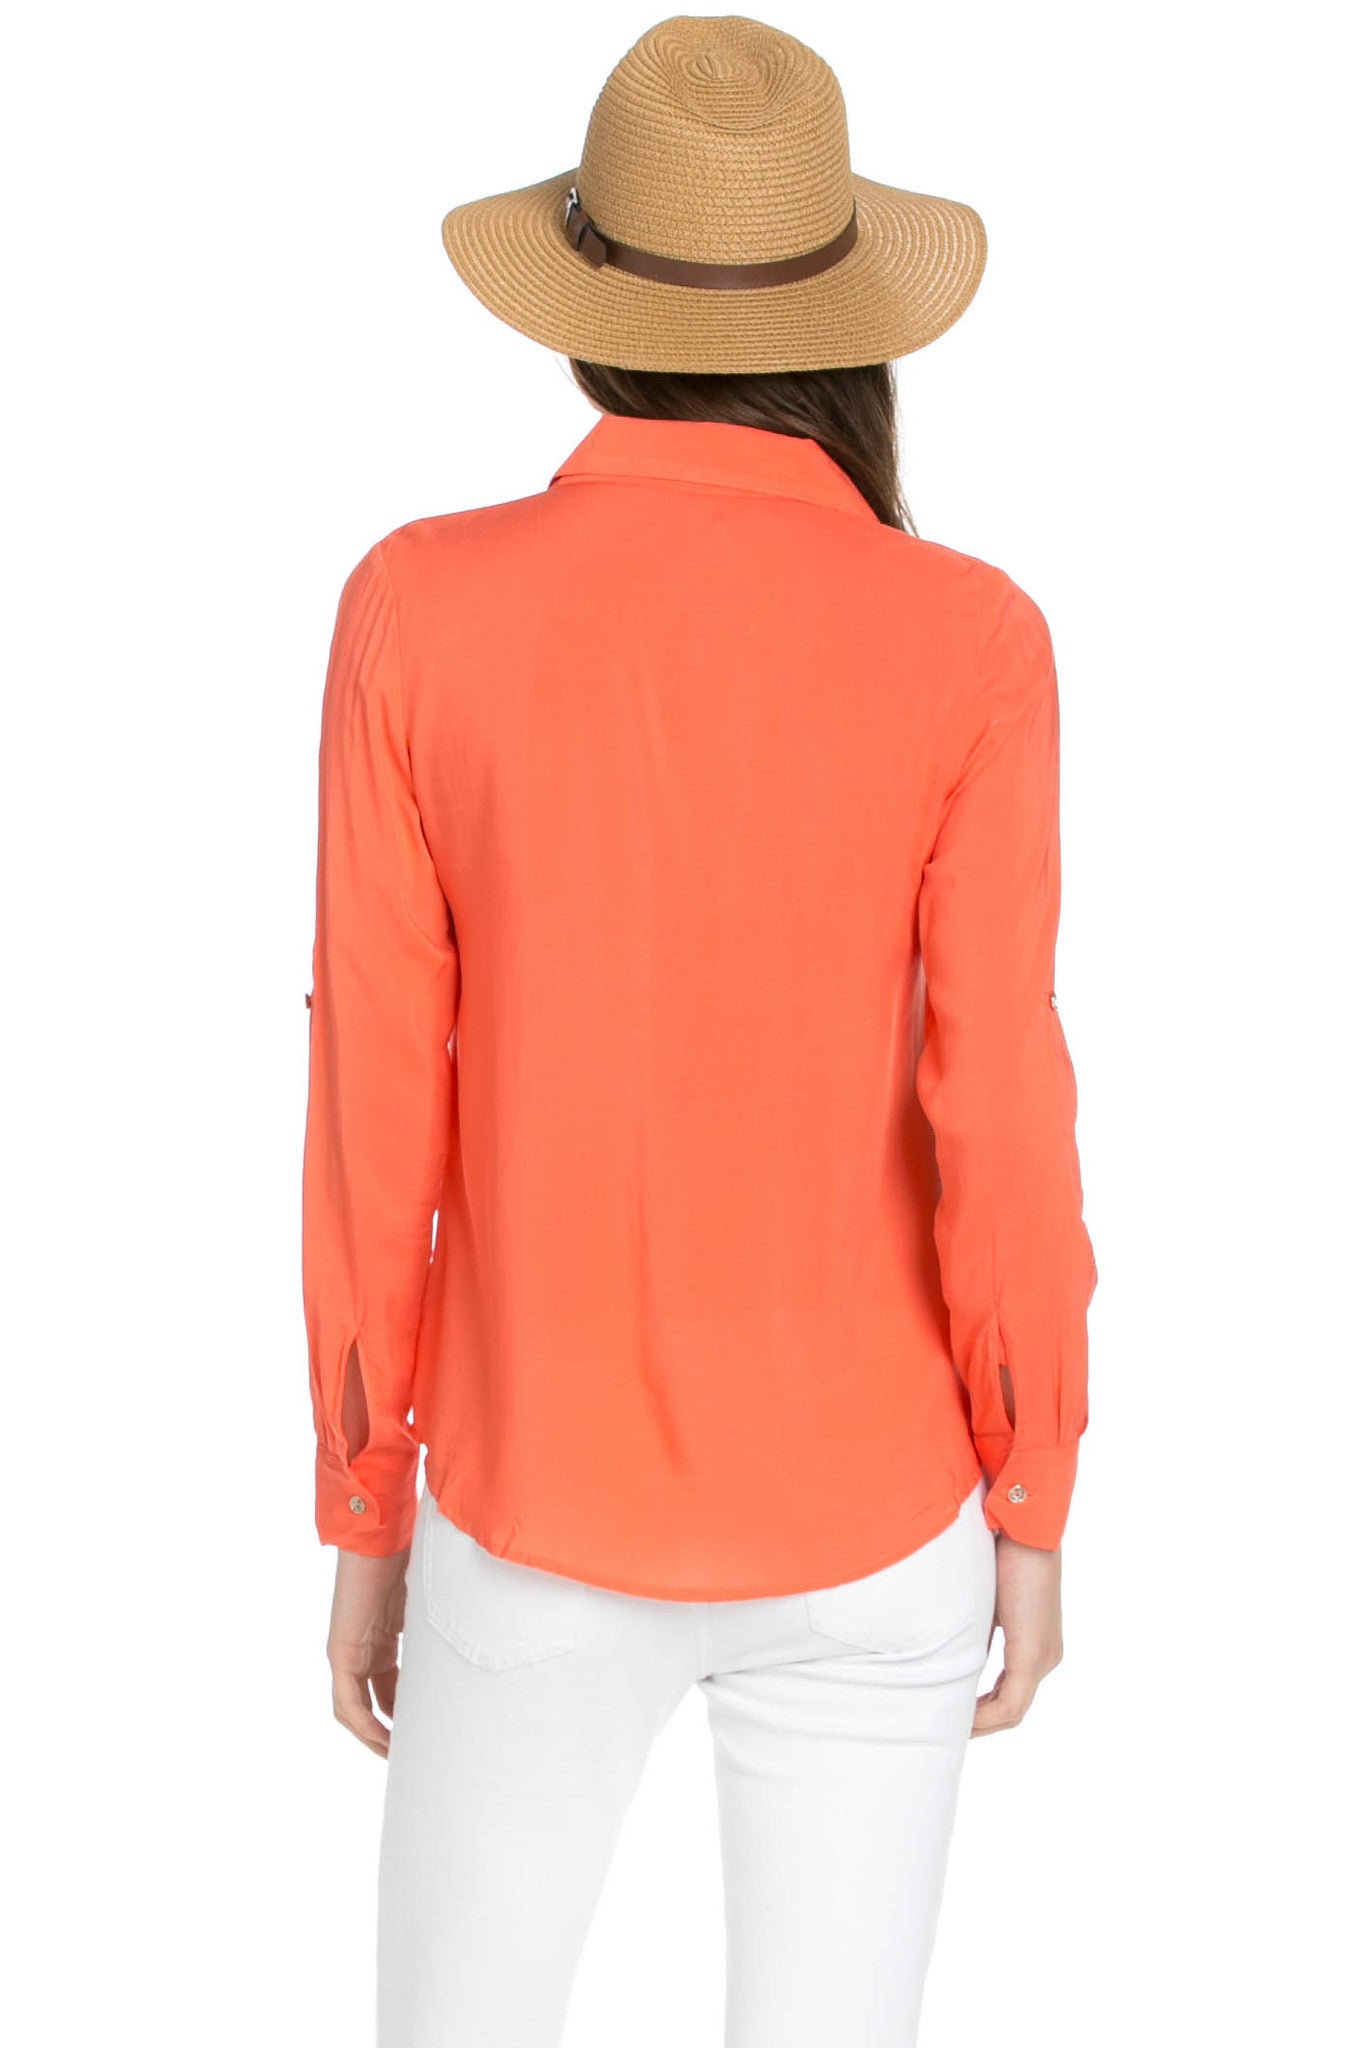 Button Up Shirt Coral - Tops - My Yuccie - 3